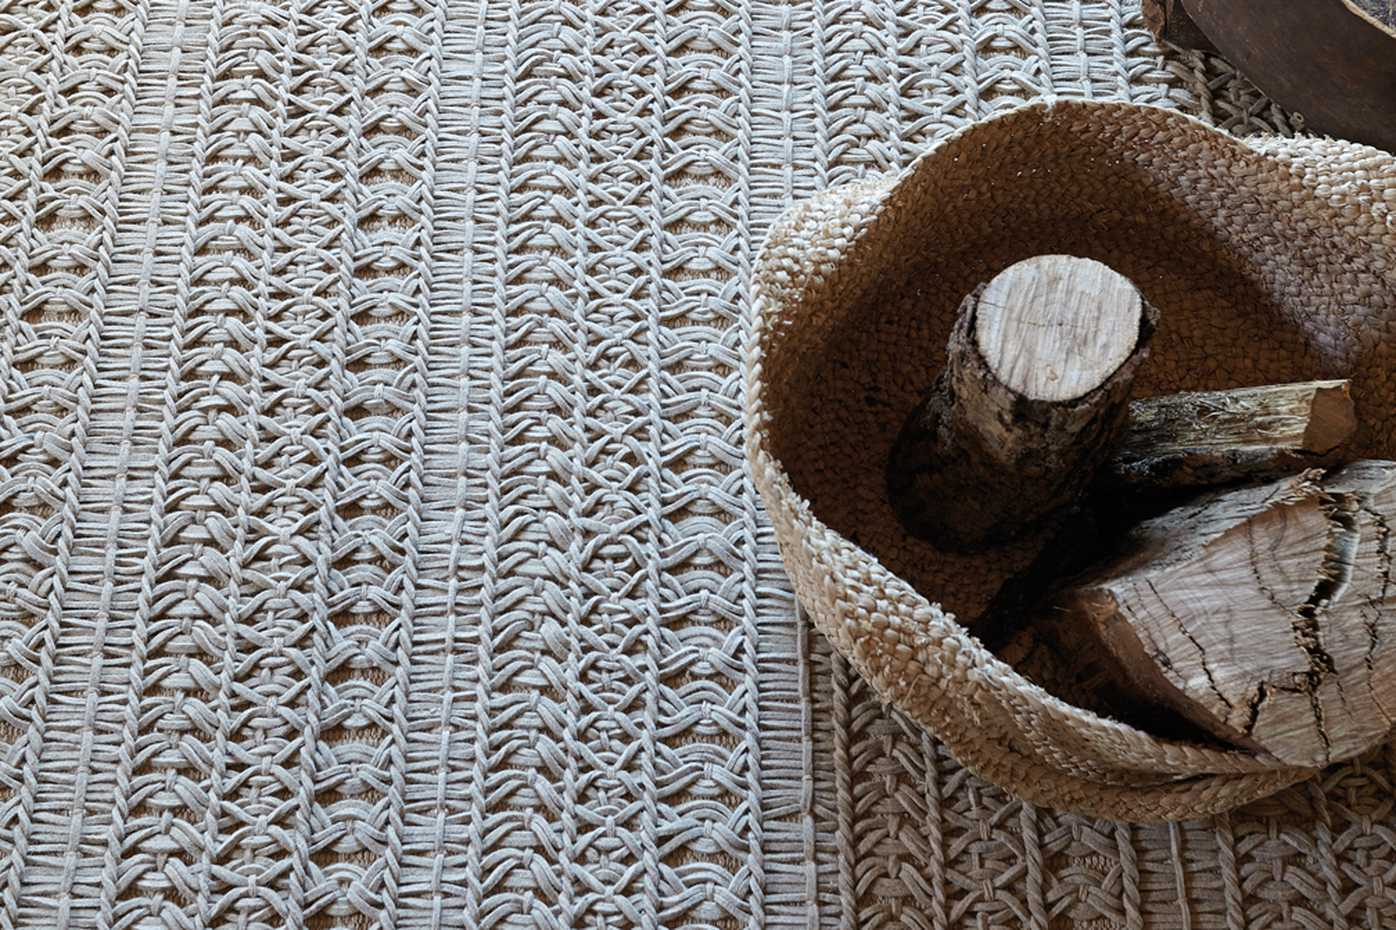 Knotwork by Gan Rugs product image 2